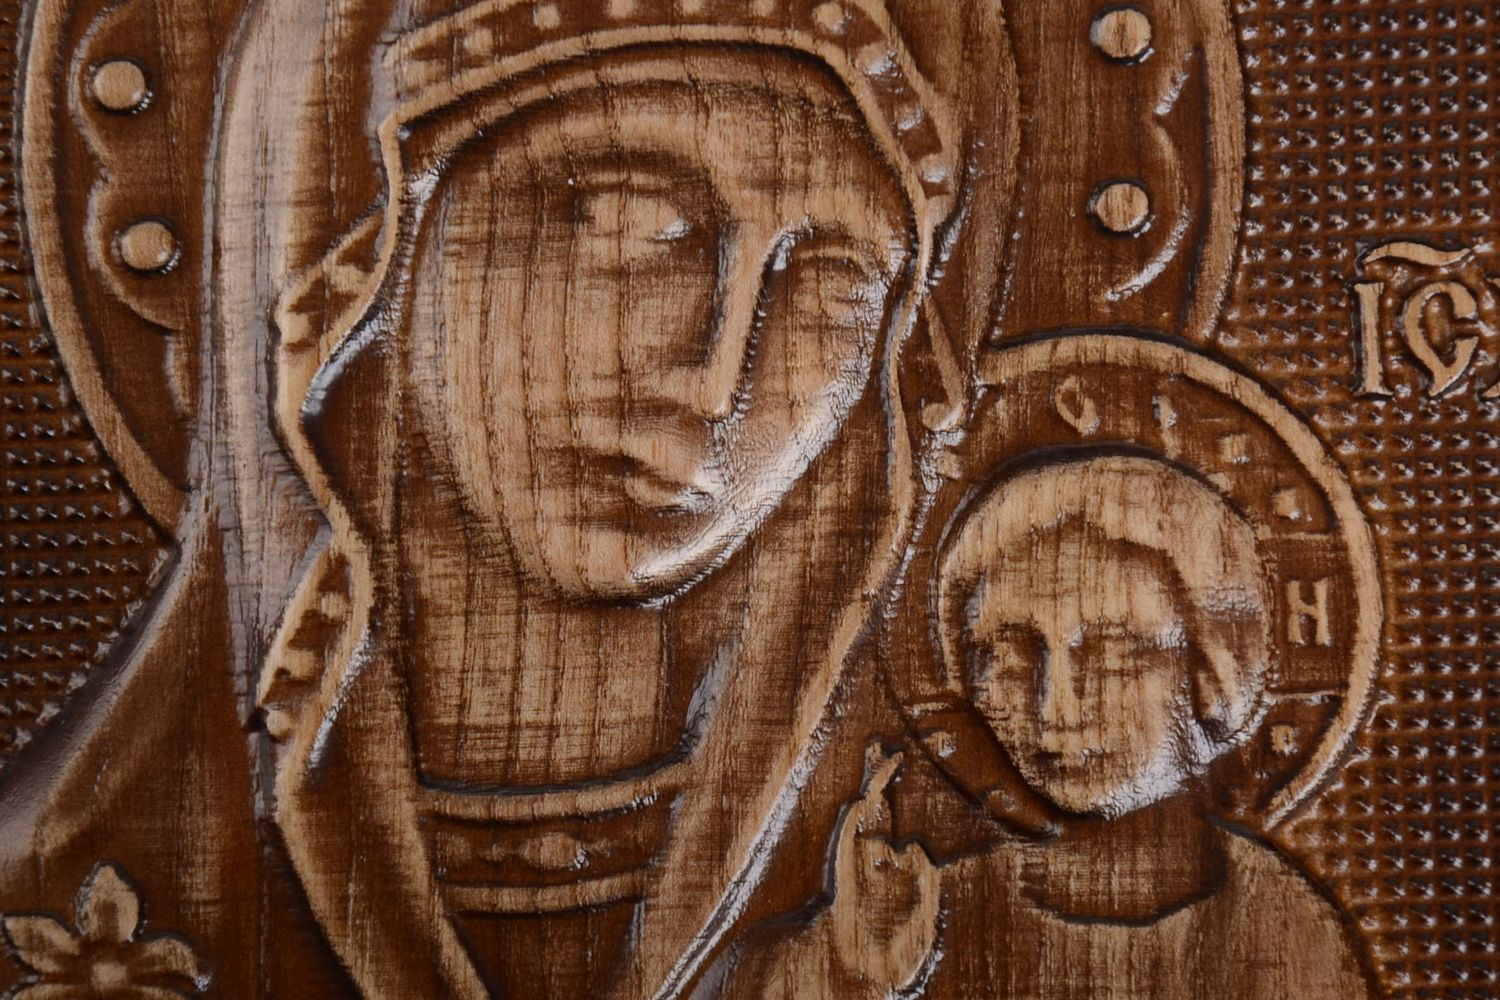 carved Handmade orthodox icon wooden carved accessories beautiful unusual interior - MADEheart.com